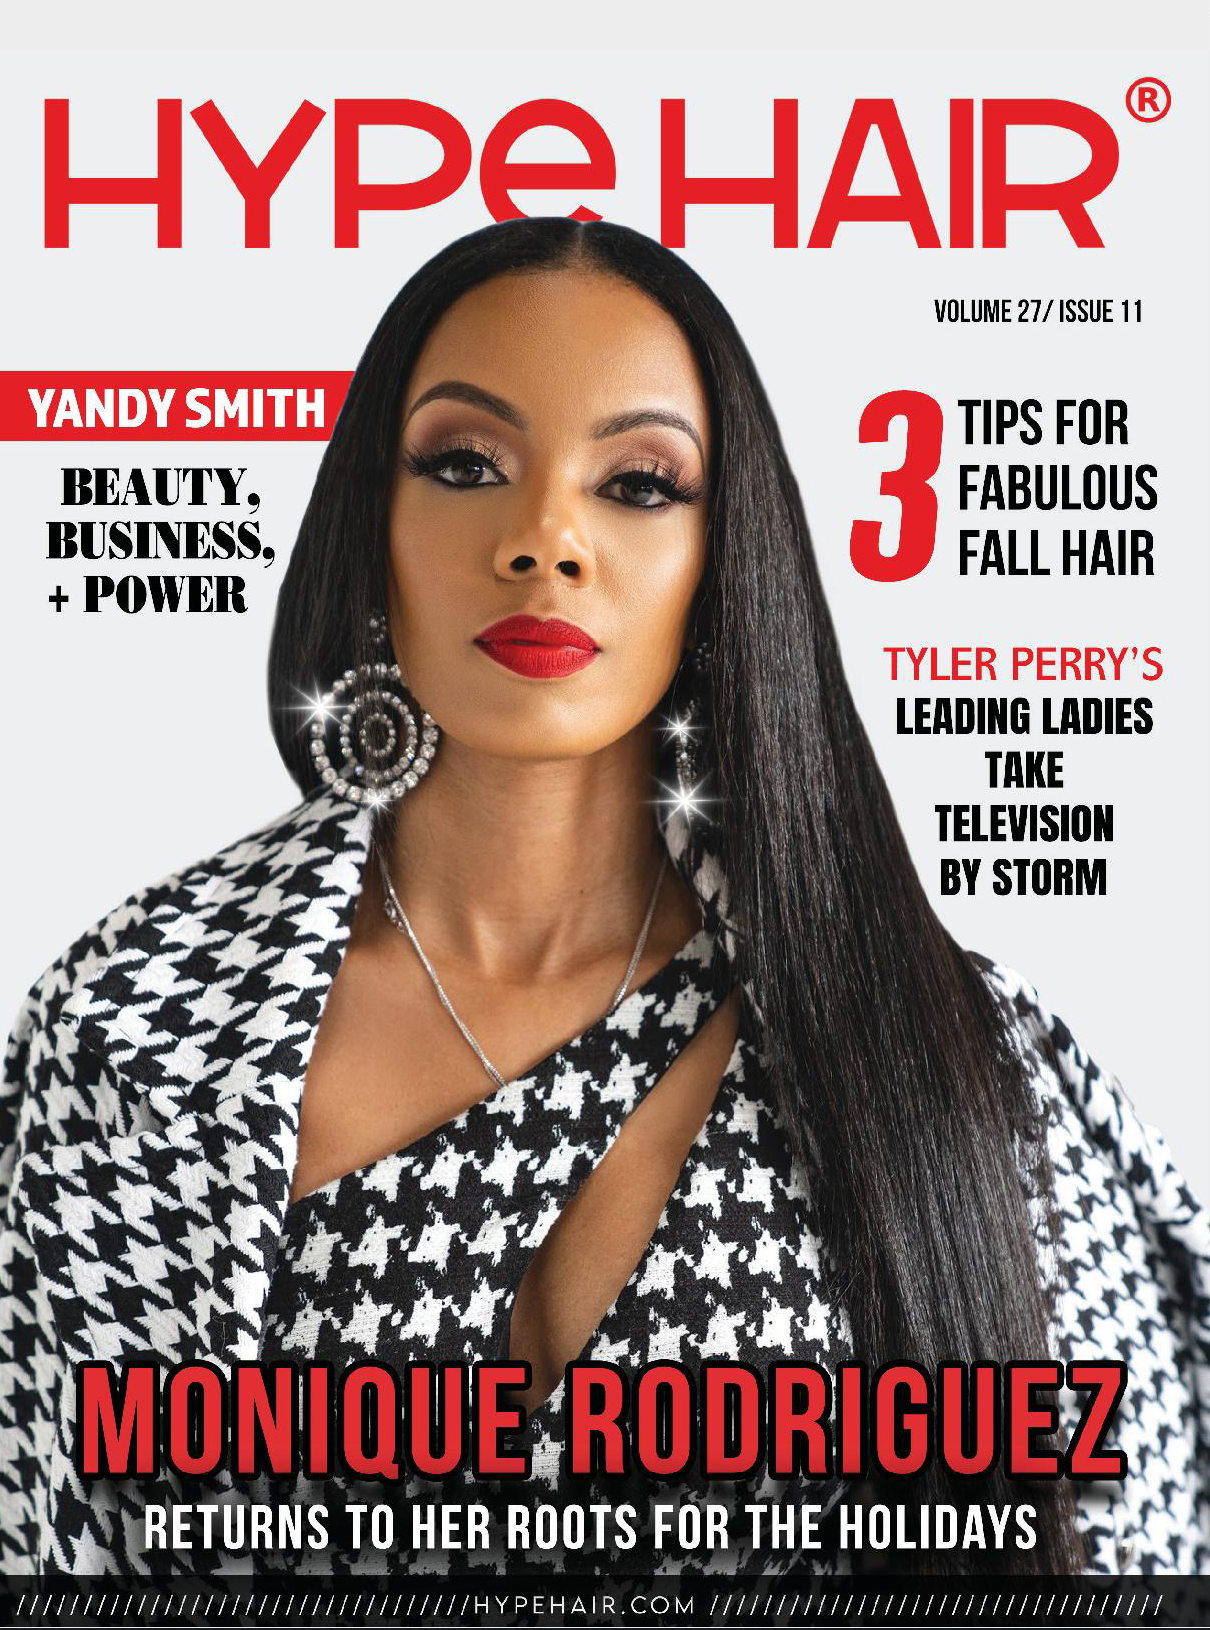 Monique Rodriguez Hype Hair November 2020 Cover